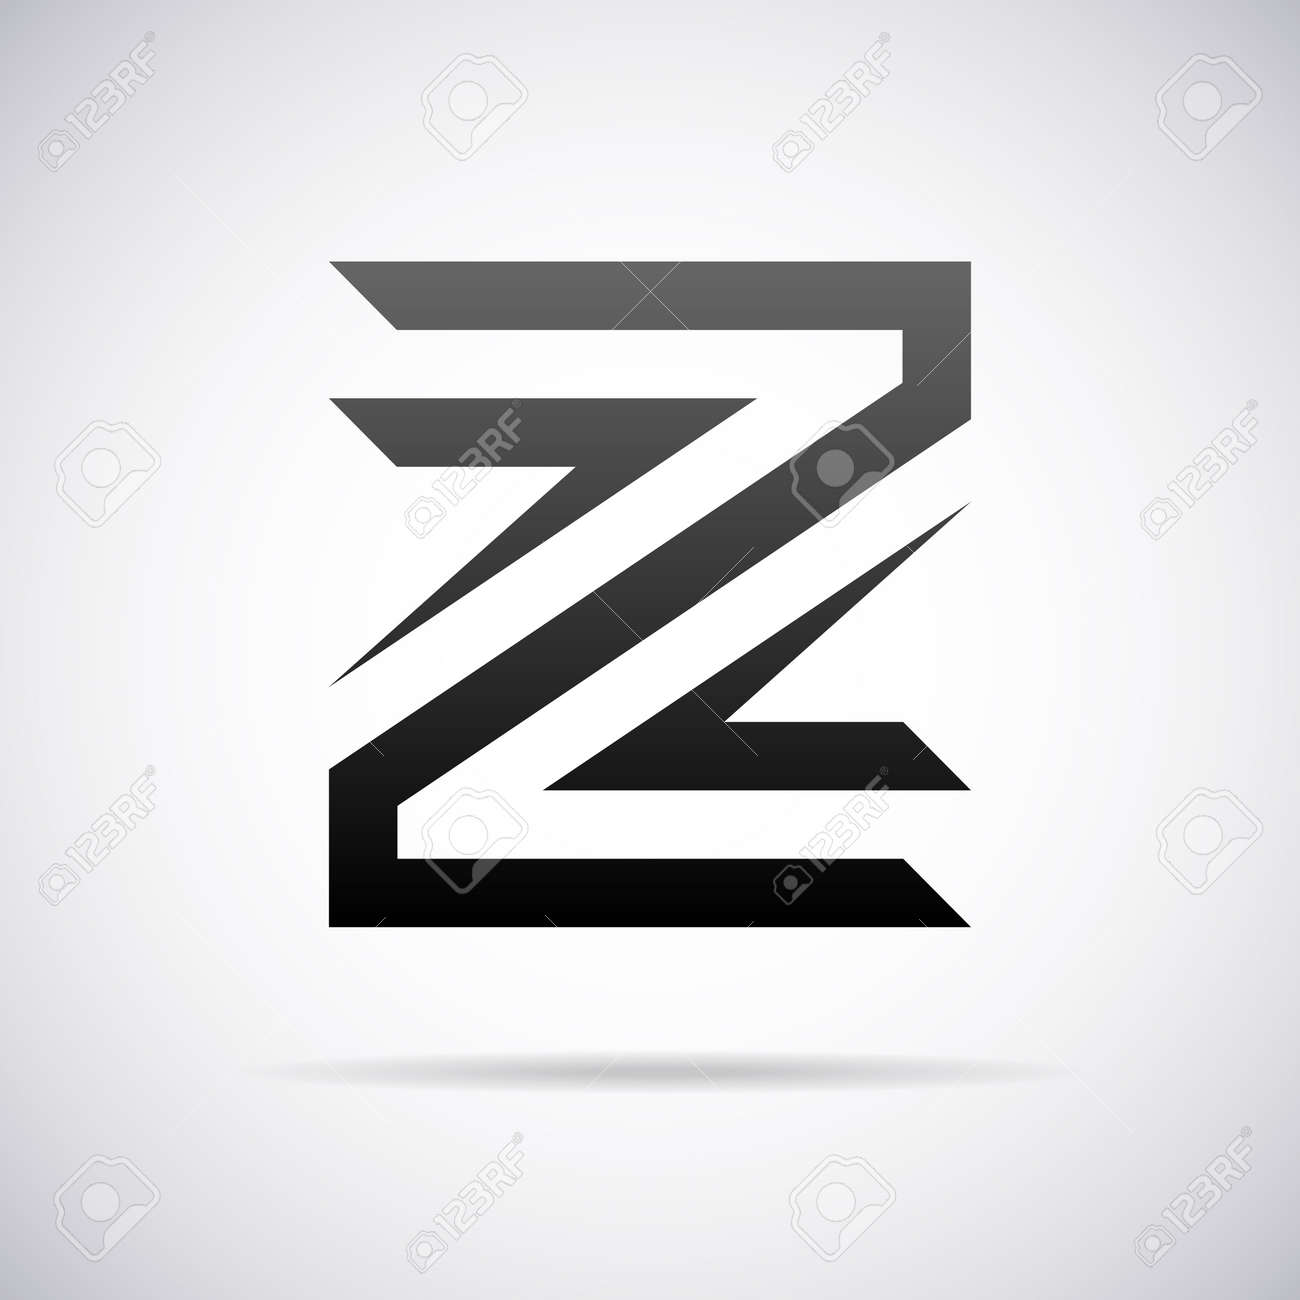 Logo For Letter Z Design Template Vector Illustration Stock Vector    43081562